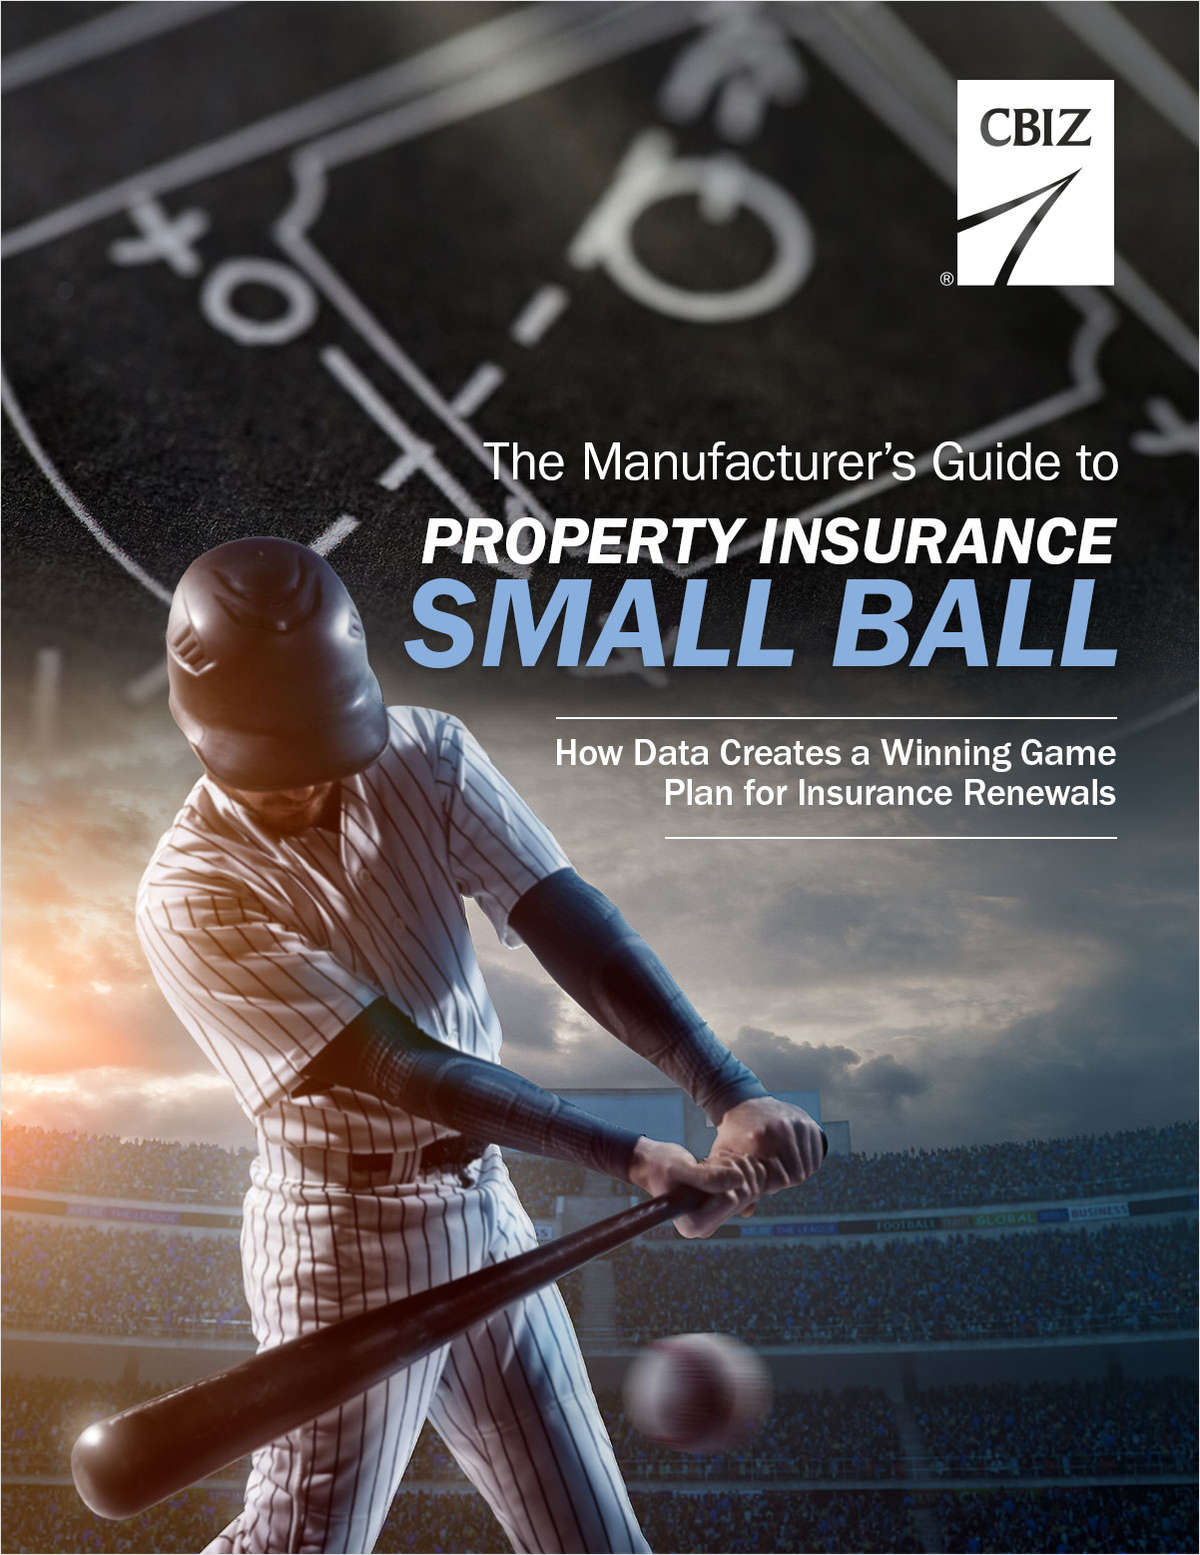 The Manufacturer's Guide to Property Insurance Small Ball